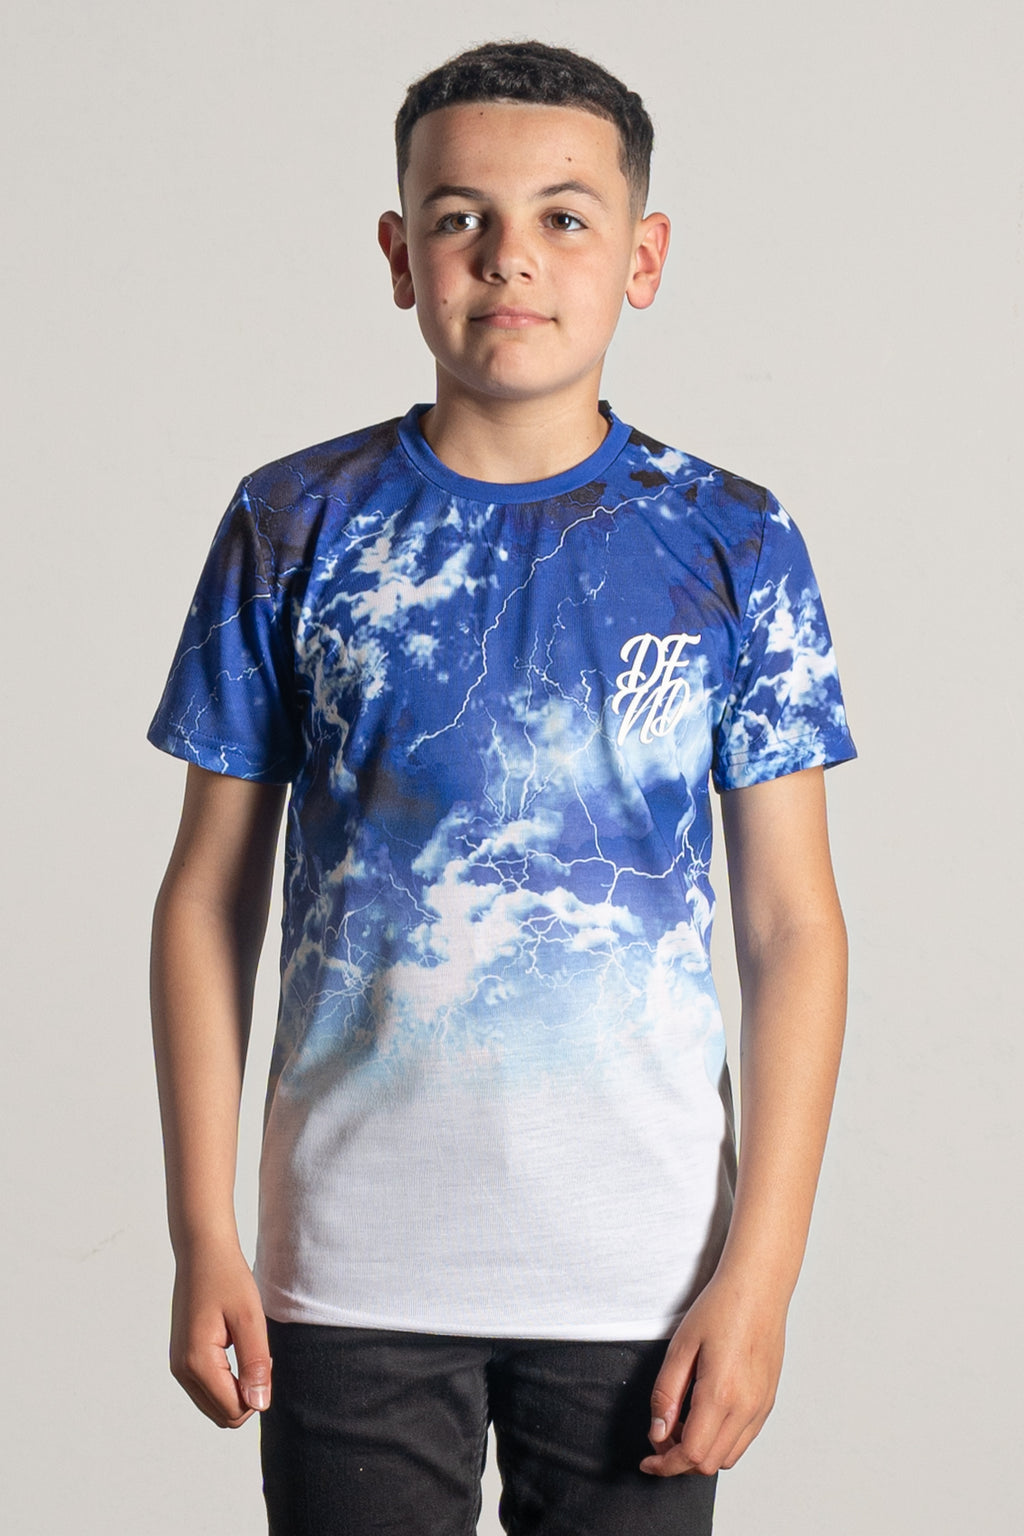 Boy's Heavens T-Shirt in Blue & White